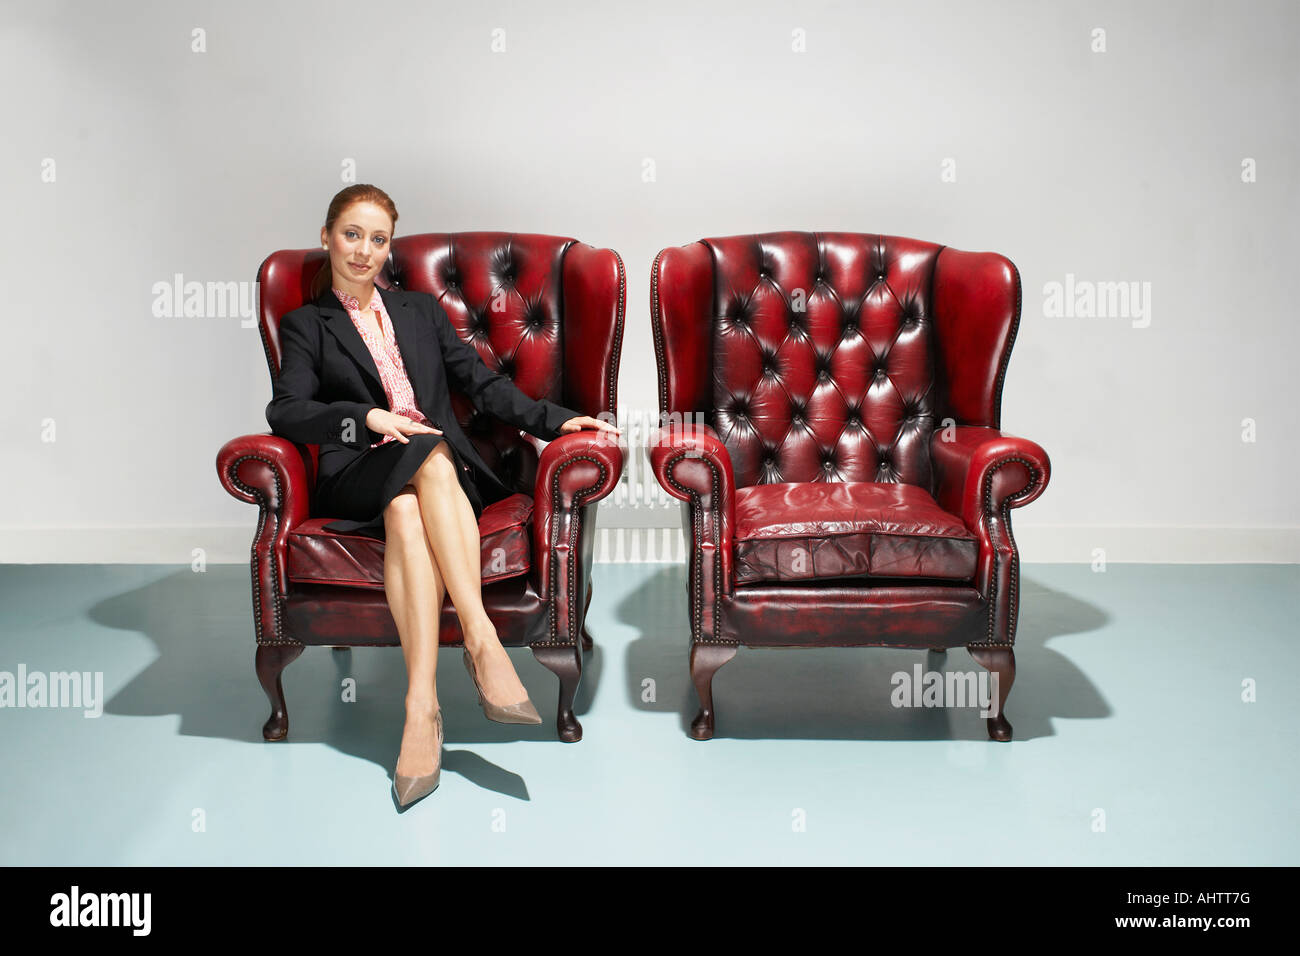 Businesswoman in a comfy leather chair Stock Photo